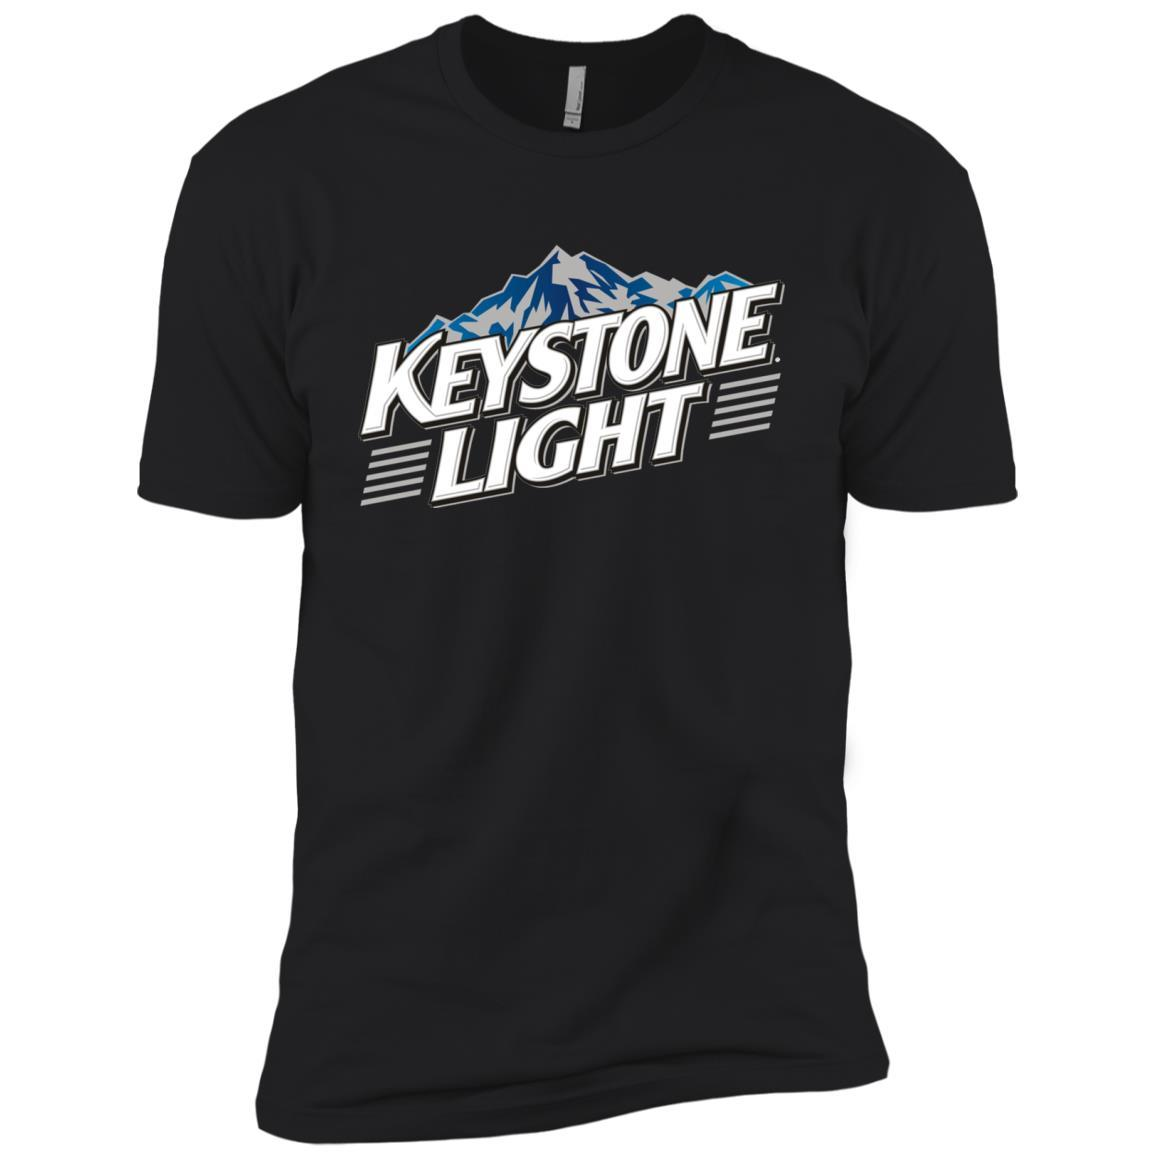 Keystone Light Beer - Short Sleeve T-Shirt Style / Color / Size